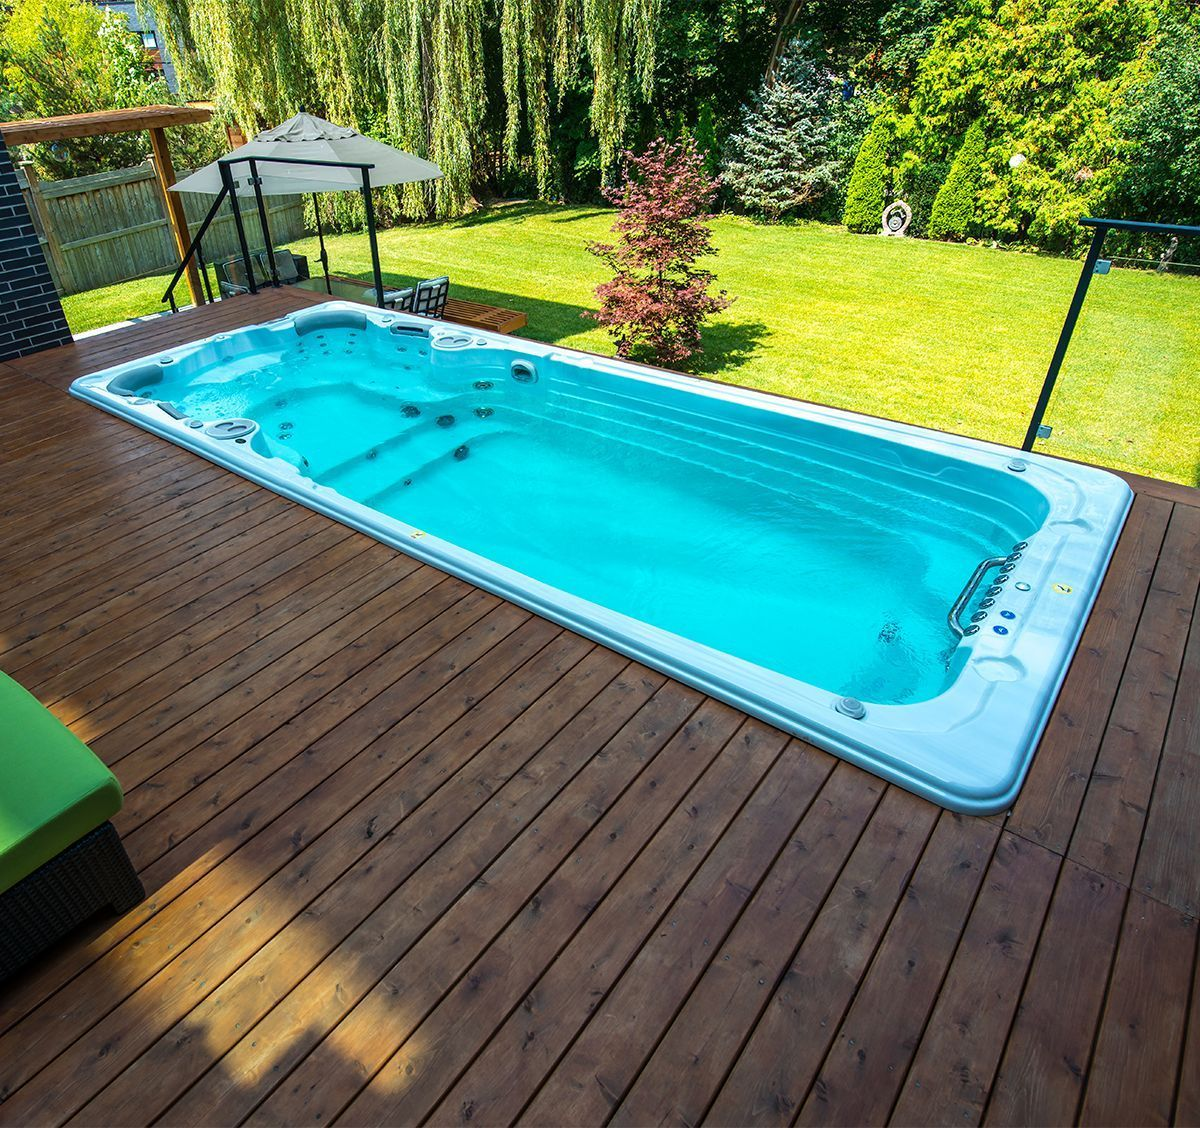 Installing Your Swim Spa Into A Deck Can Give You An Inground Pool Look For Significantly Less Than An Inground Swim Spa Landscaping Backyard Pool Endless Pool